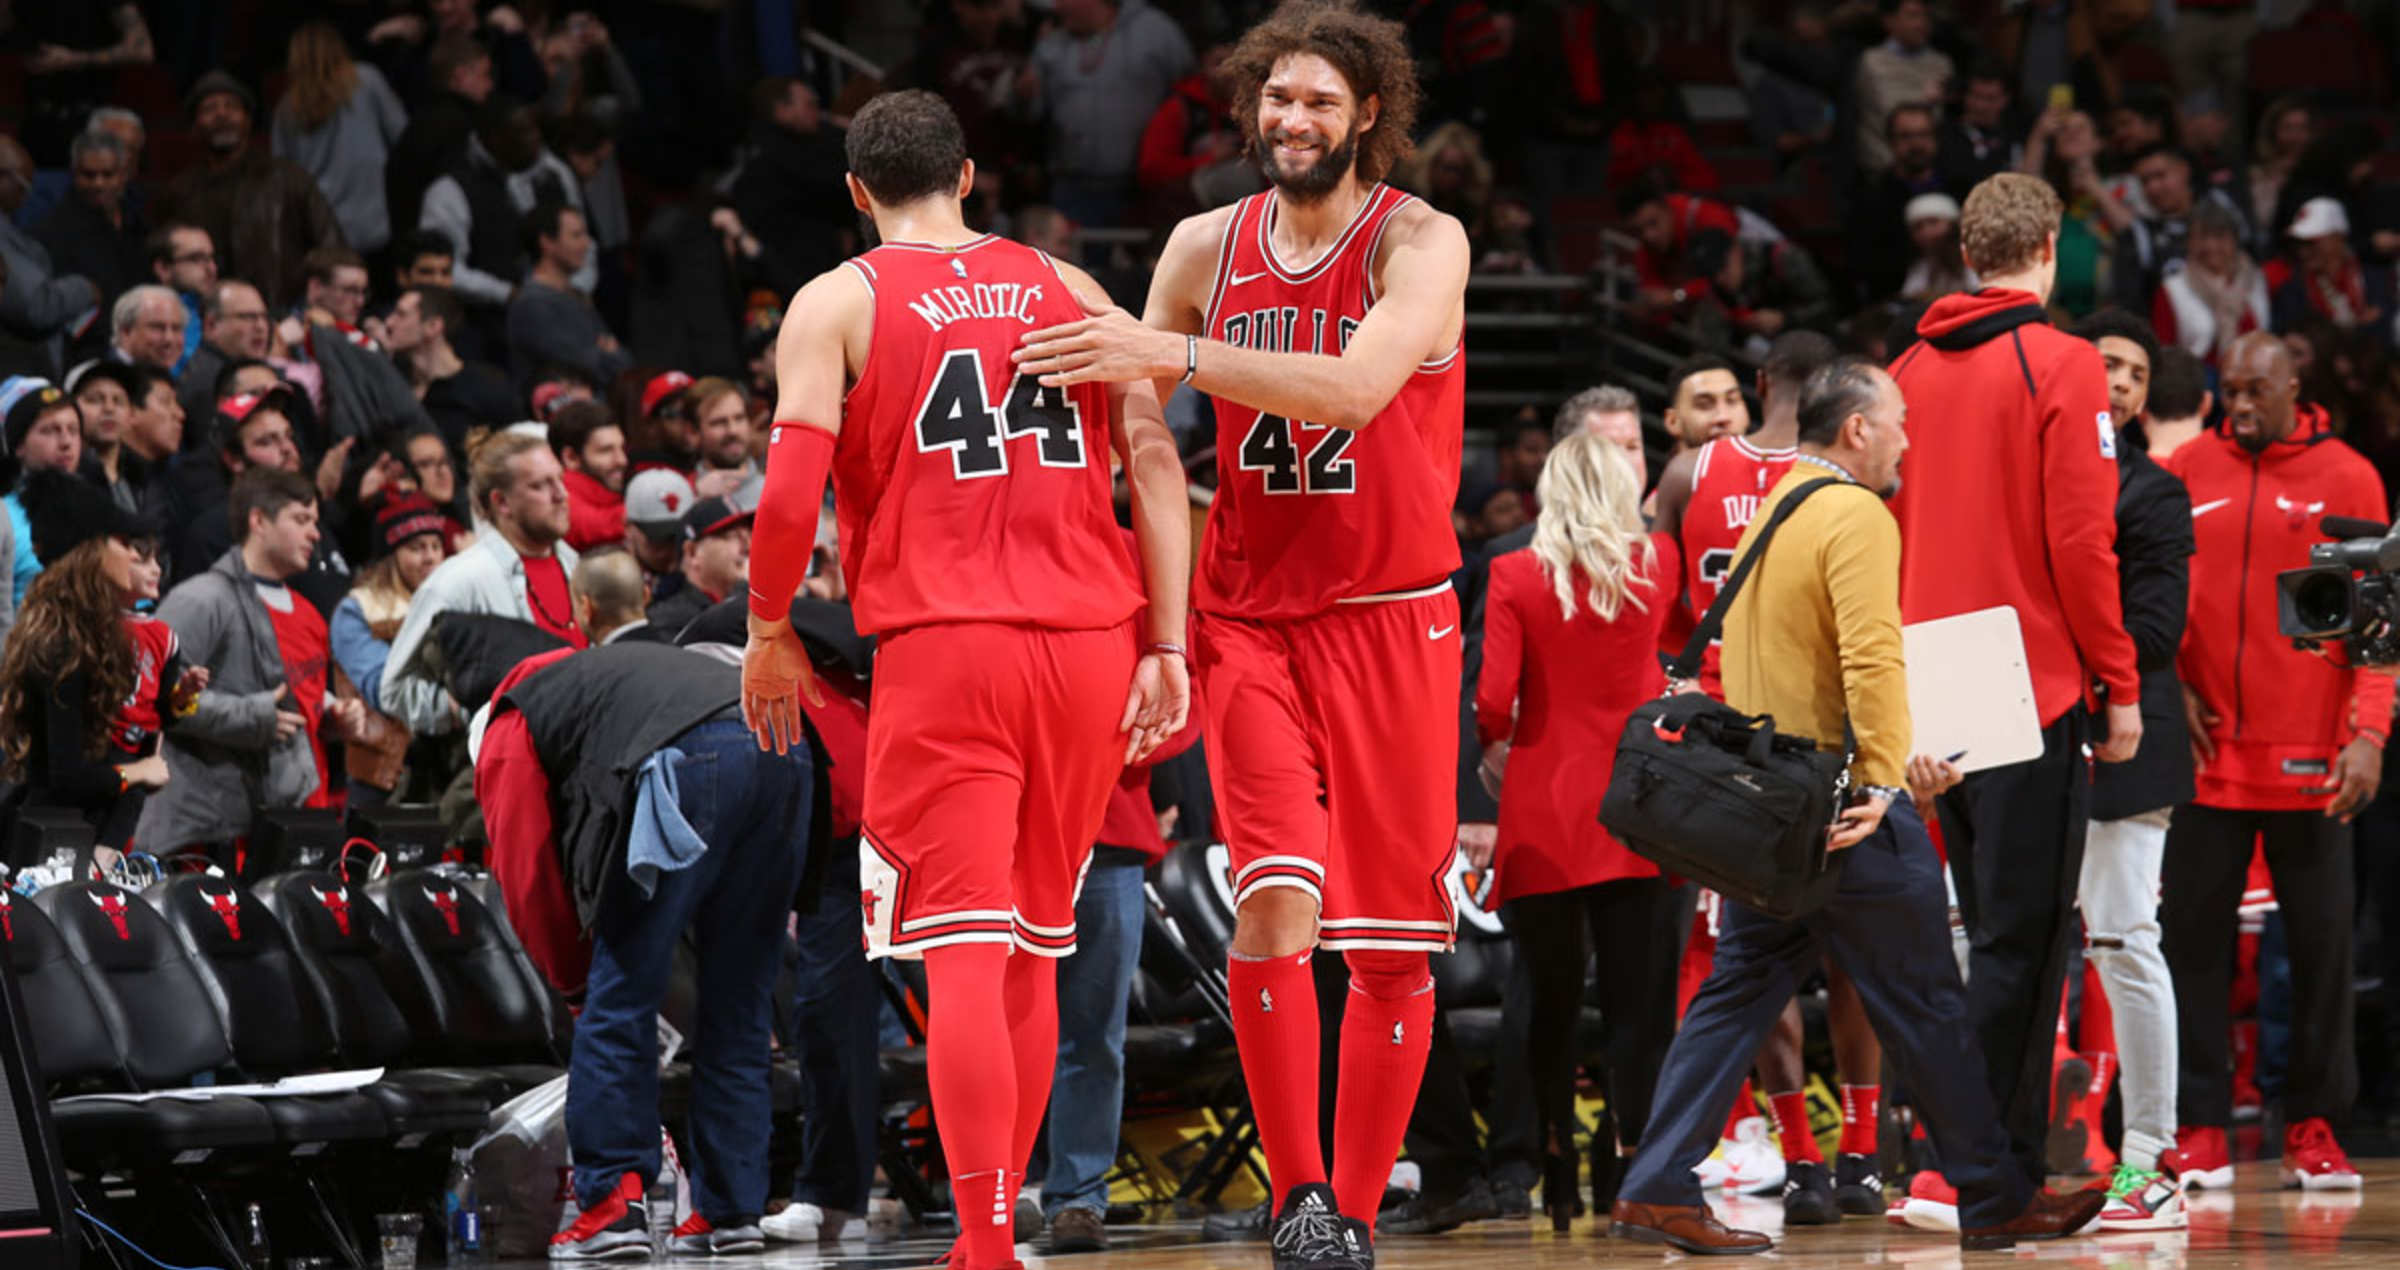 Robin Lopez #42 of the Chicago Bulls celebrates a win against the Utah Jazz on December 13, 2017 at the United Center in Chicago, Illinois.